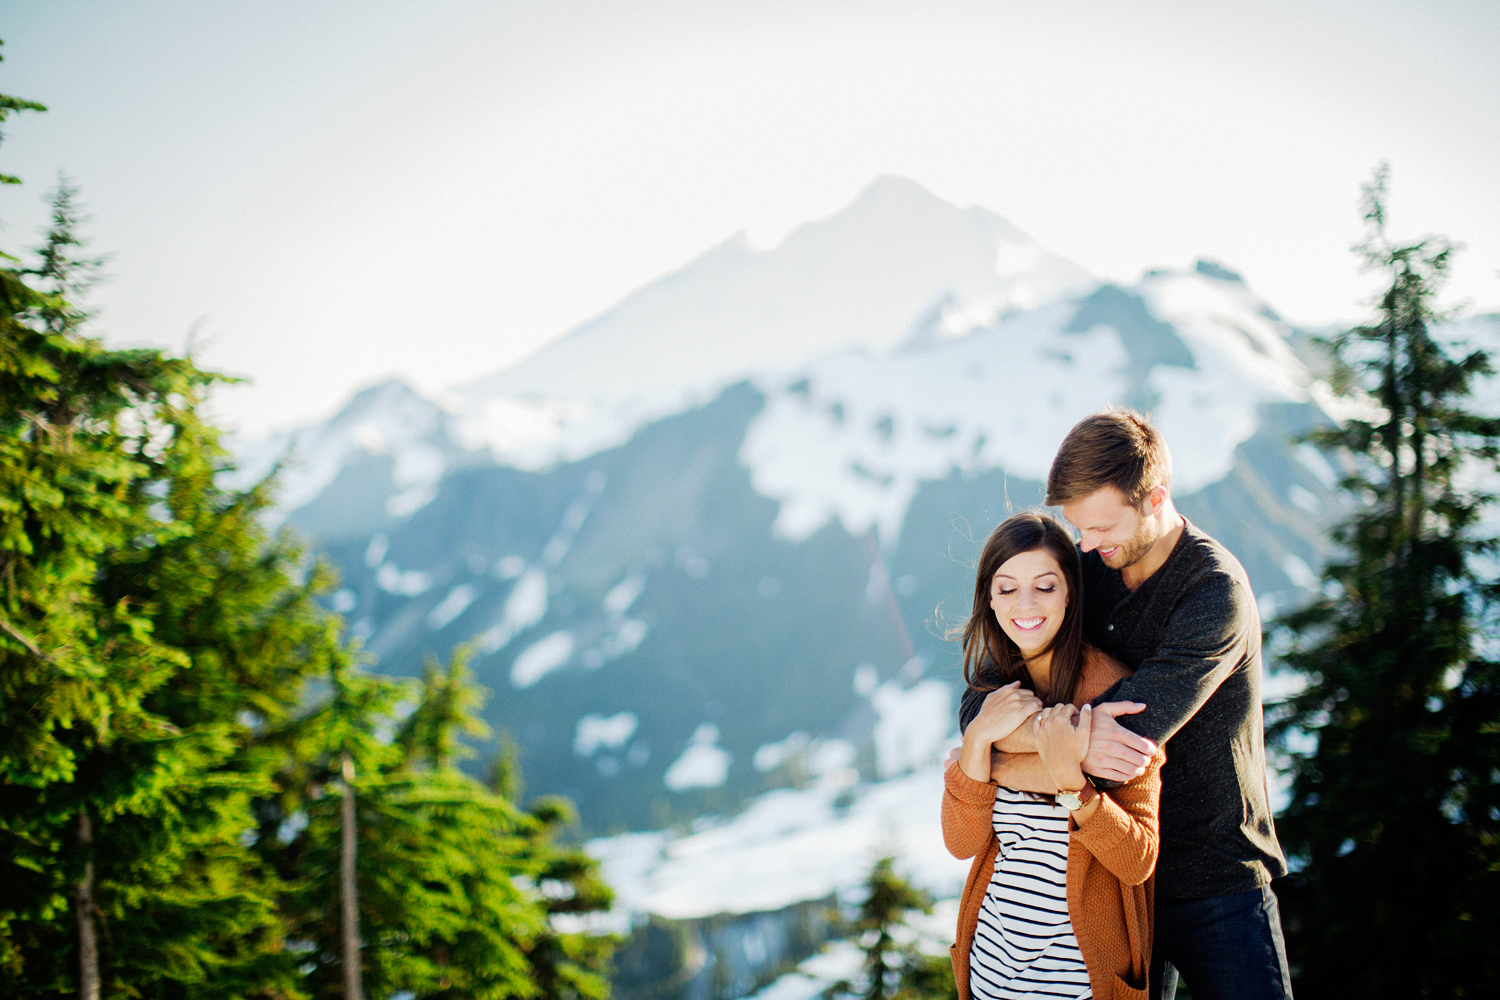 ryan-flynn-seattle-pnw-mountain-engagement-film-0018.JPG